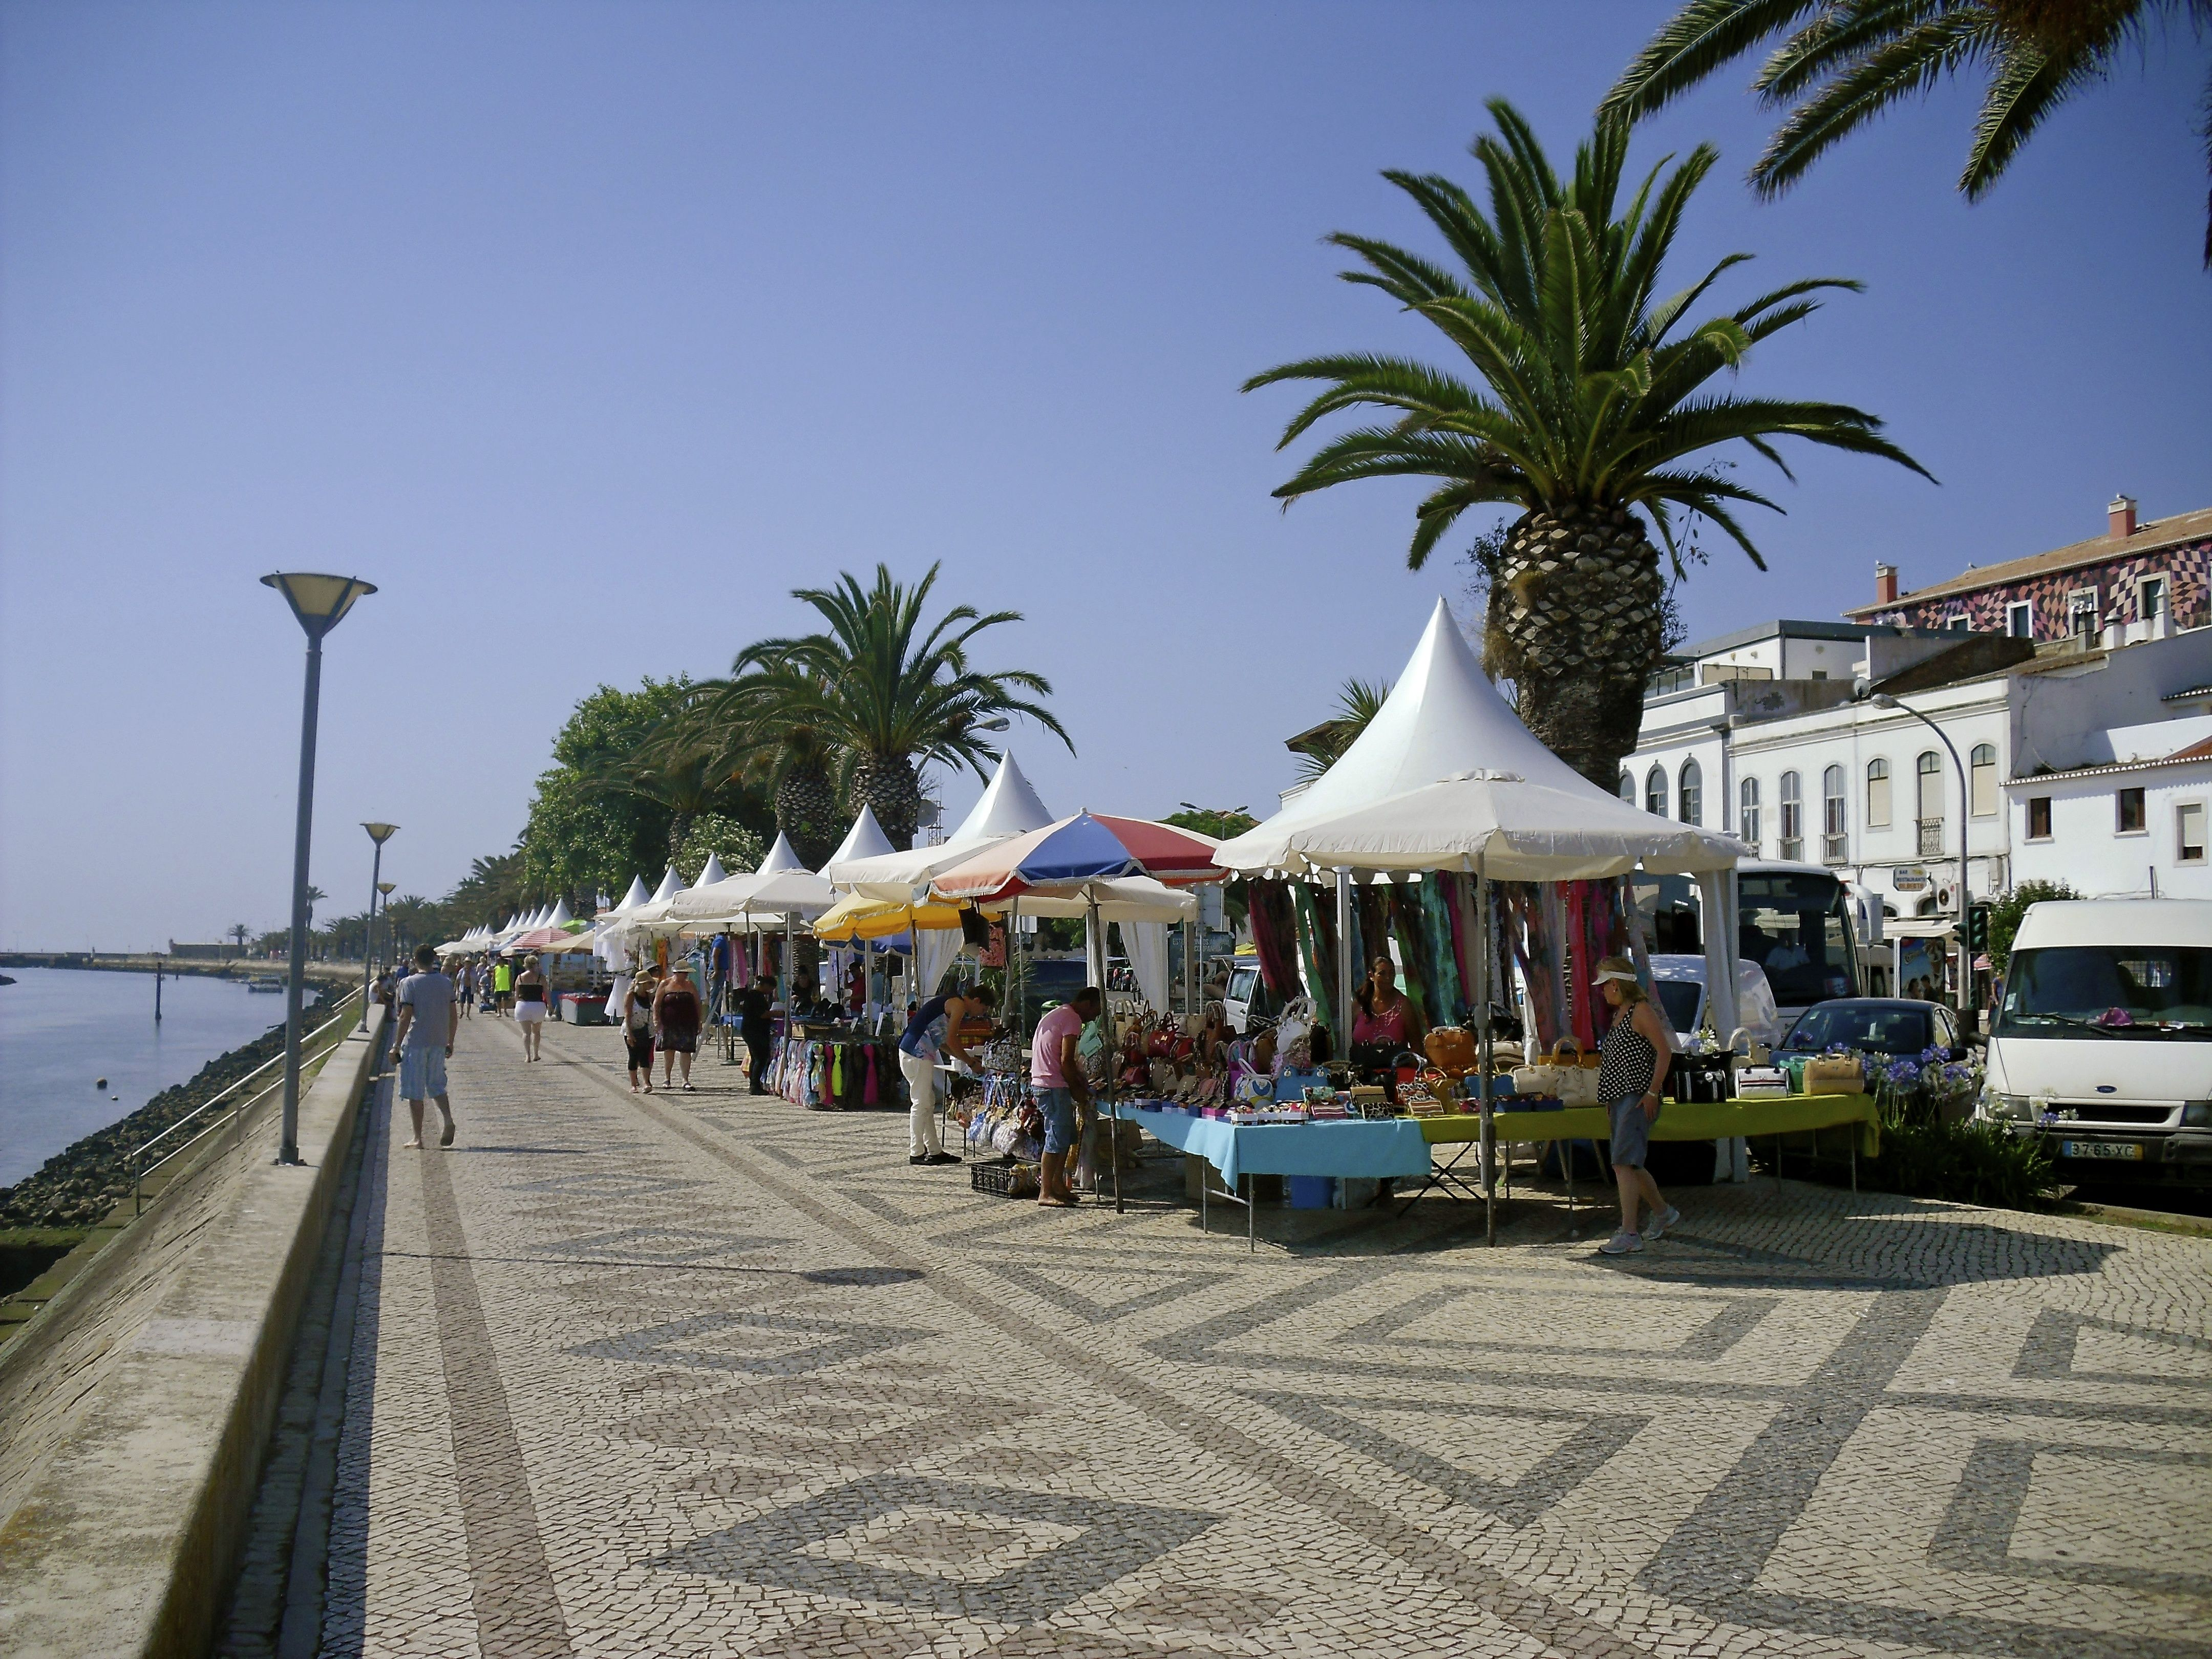 Local business's set up shop on the large promenade opposite the Marina during peak season - offering anything from sun tan lotion to local art work @visitportugal @enjoyportugal